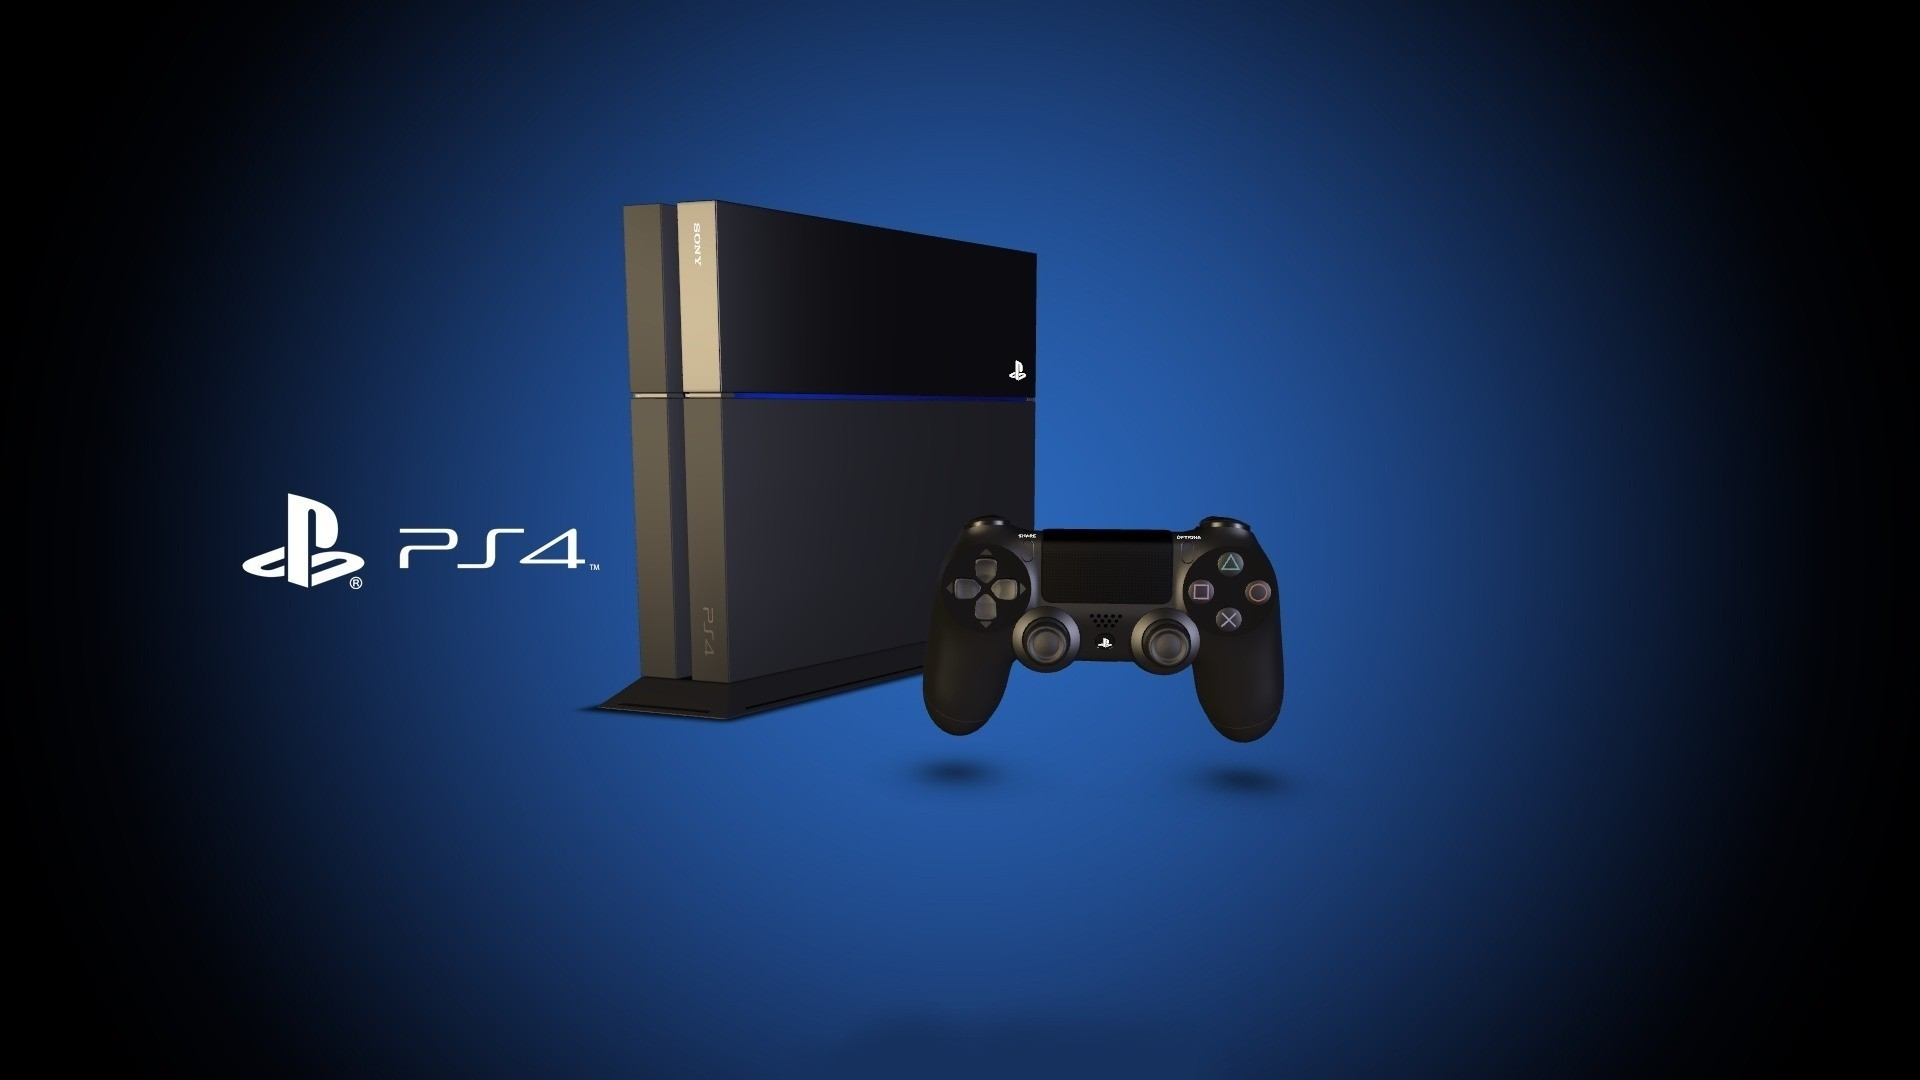 Image Playstation 4, hi-tech, ps4, sony, game, console, ...